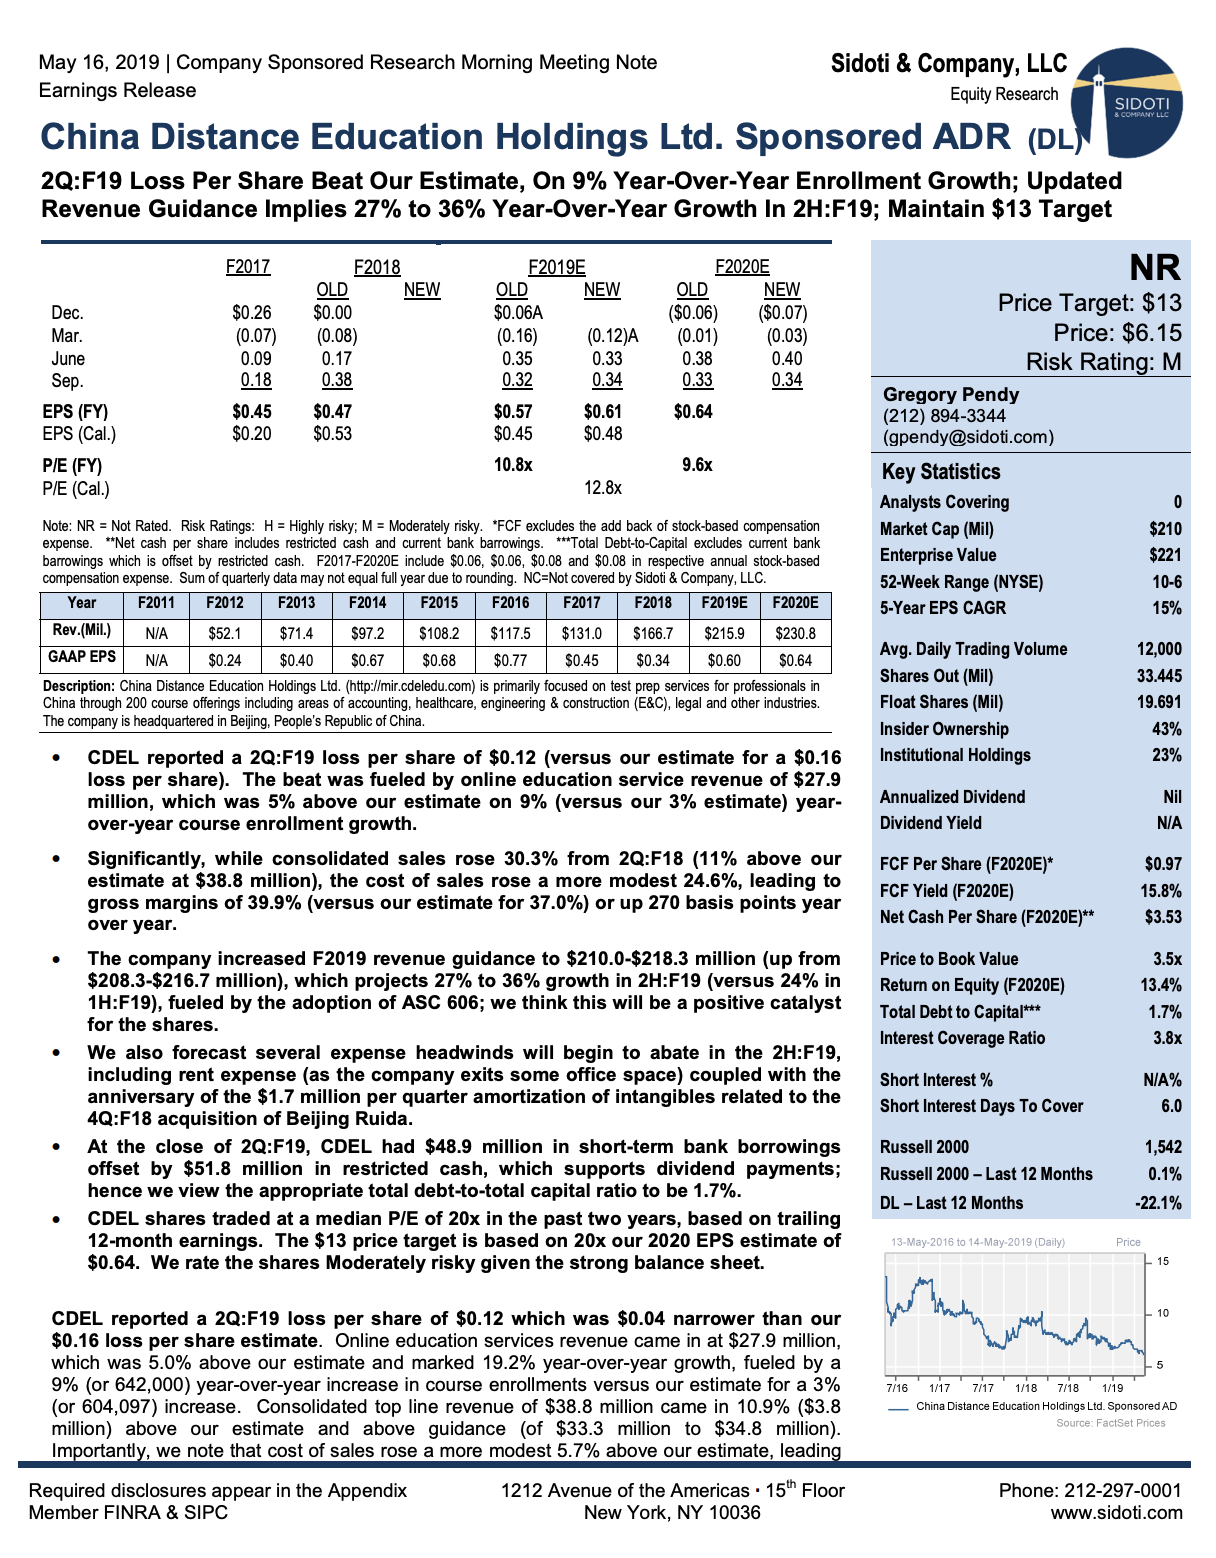 Earnings Release: May 16, 2019